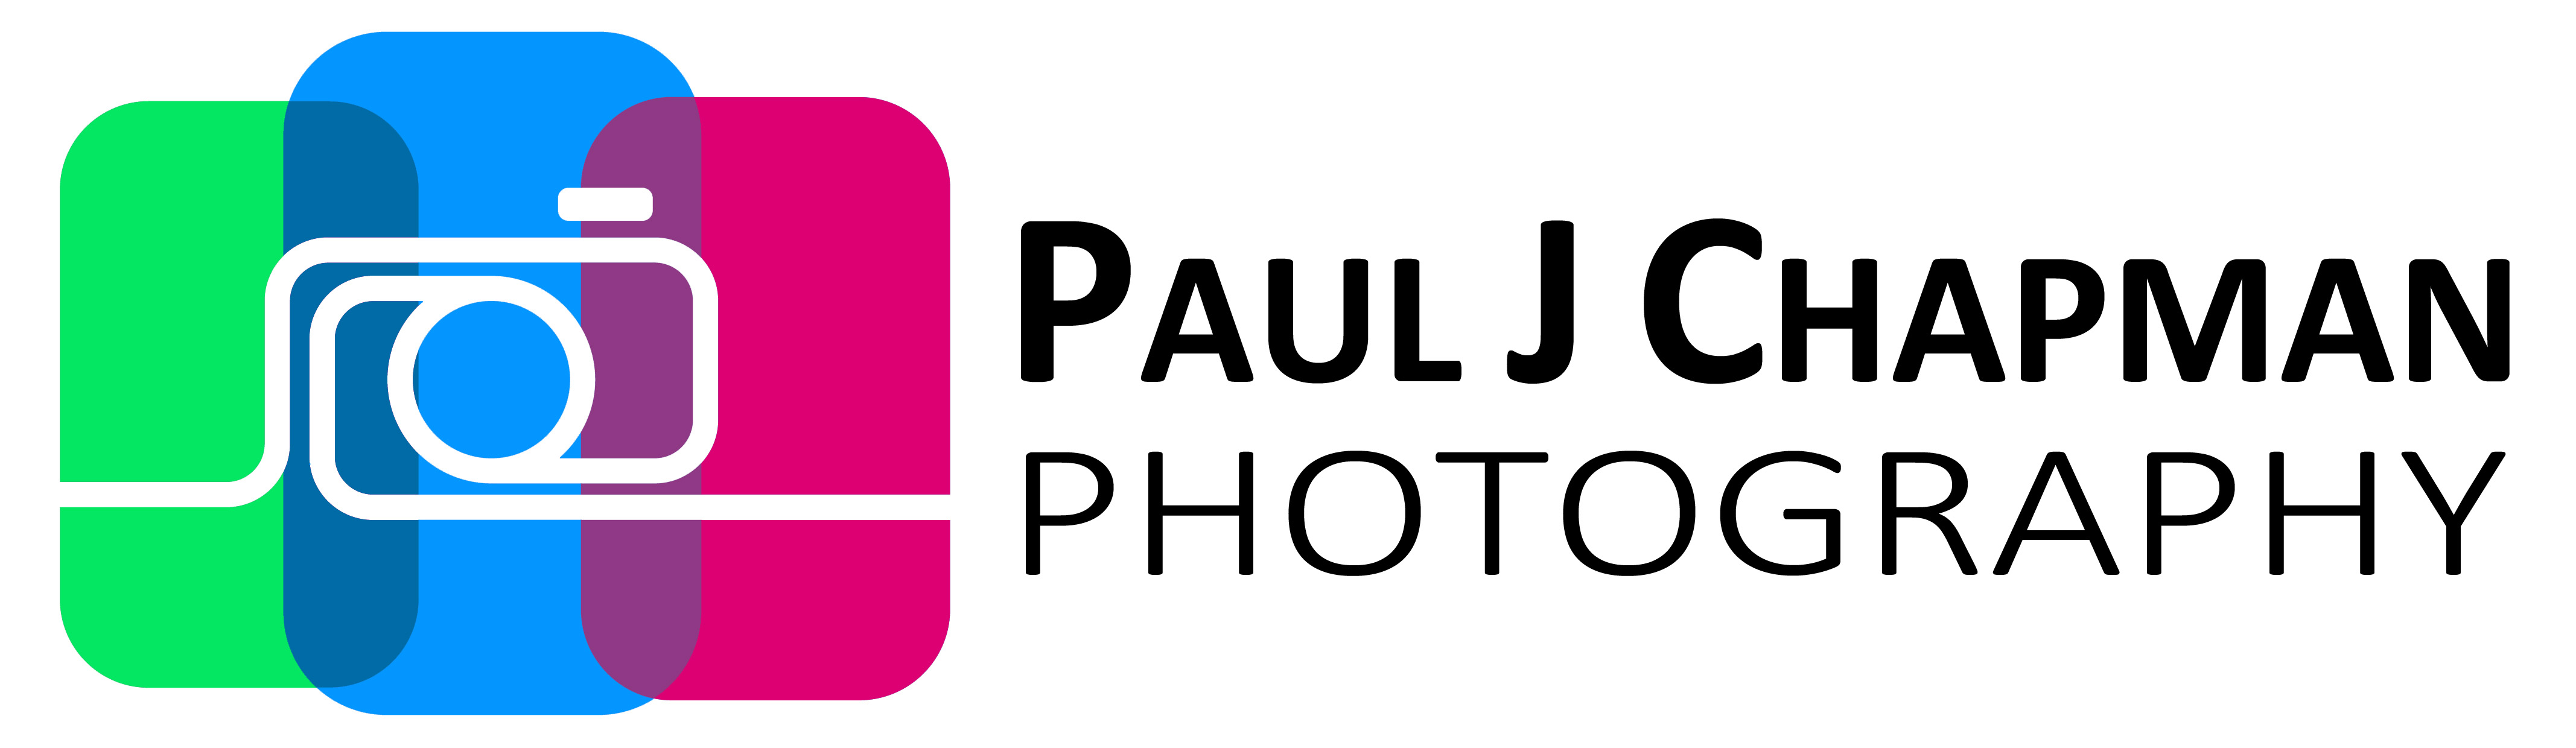 Paul J Chapman Photography